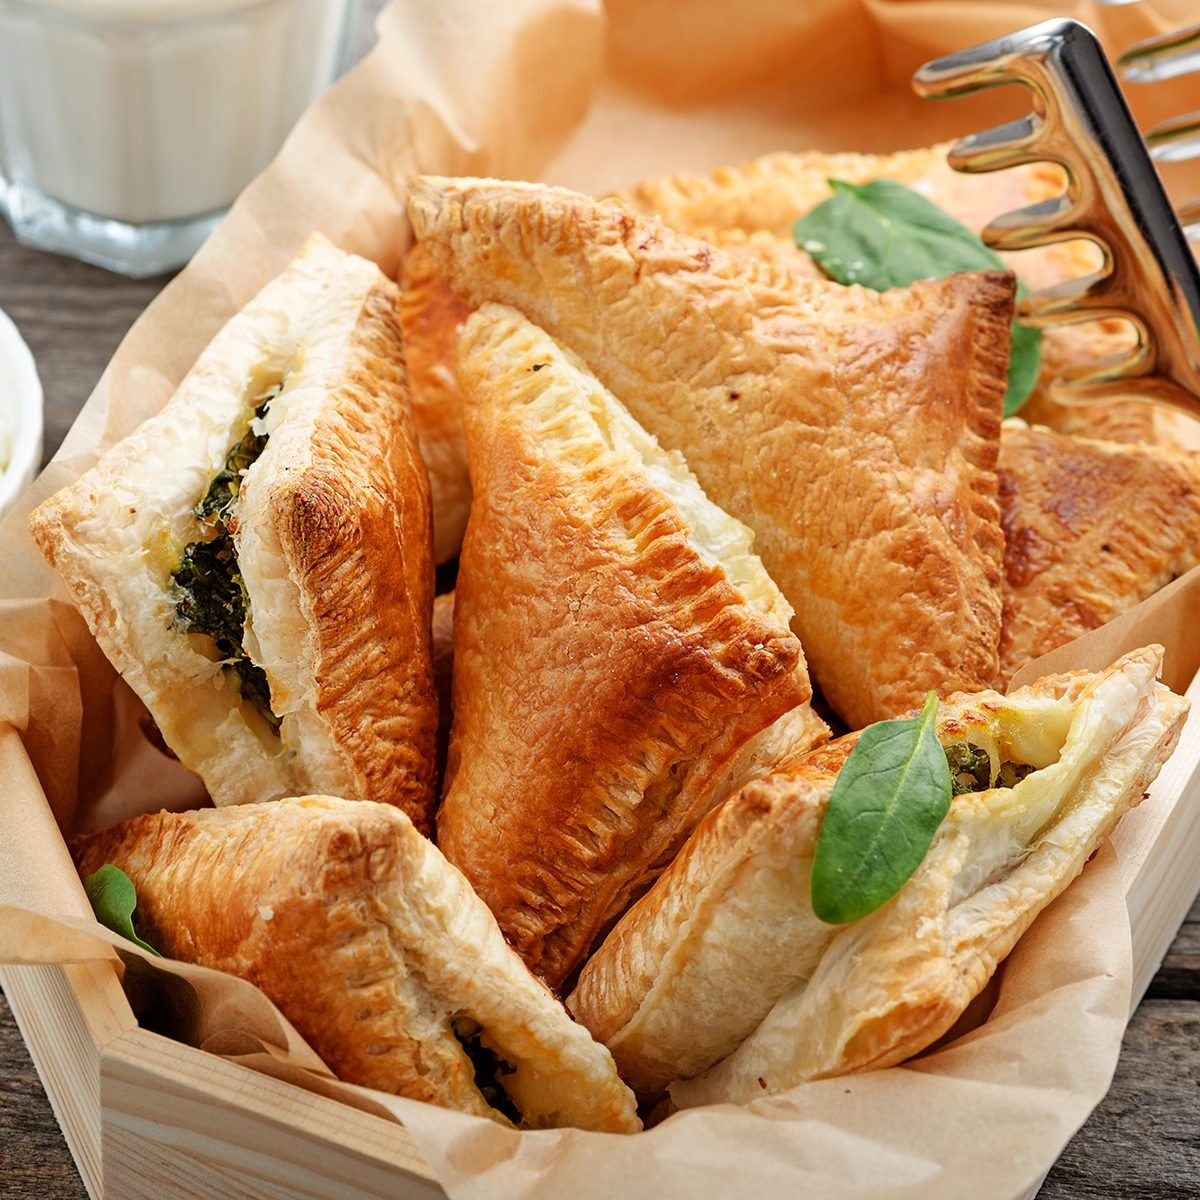 Puff pastry triangles filled with feta cheese and spinach on wooden table.